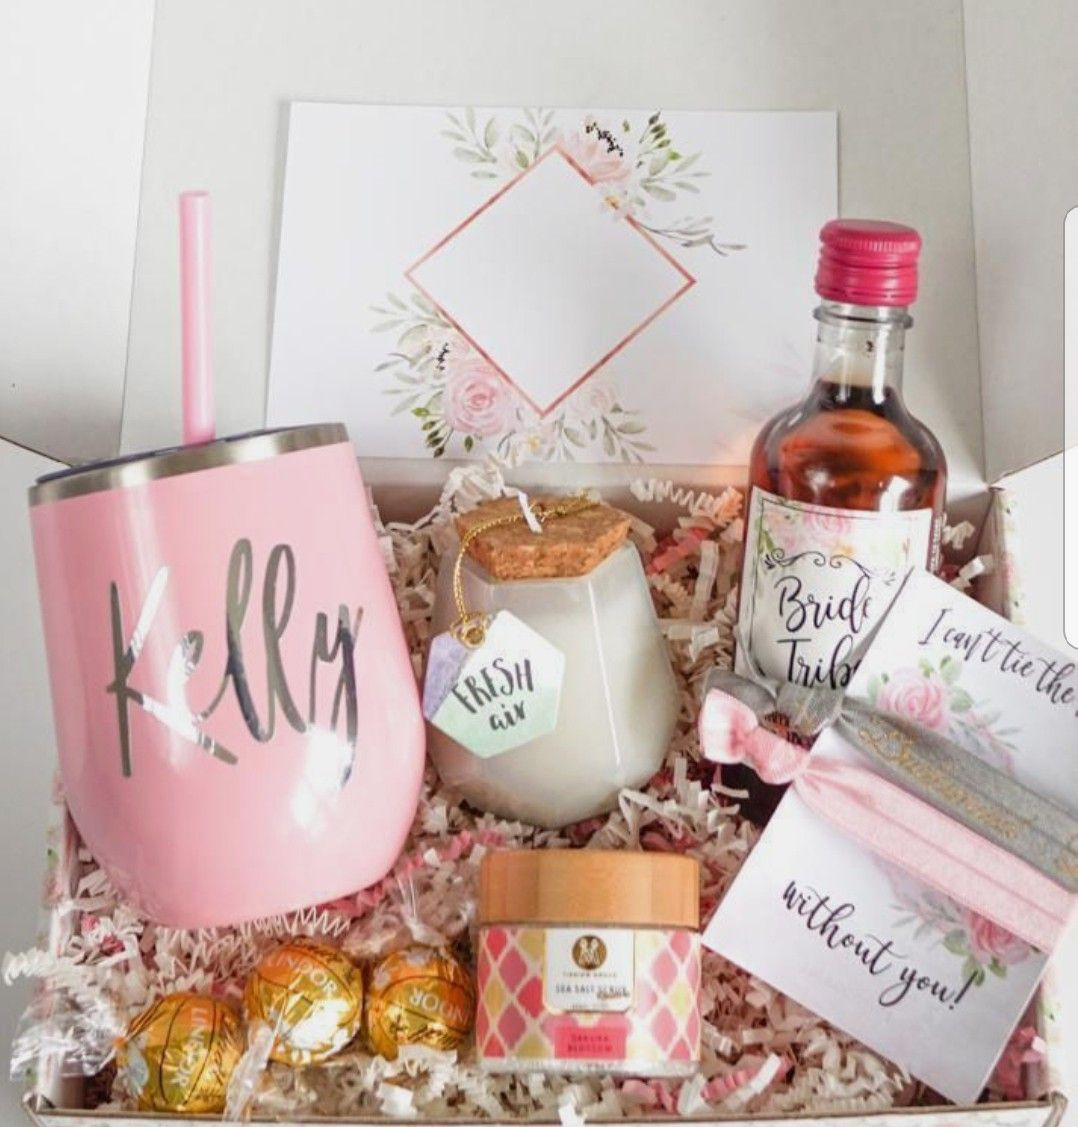 Easter basket ideas gifts for wedding party bridesmaid